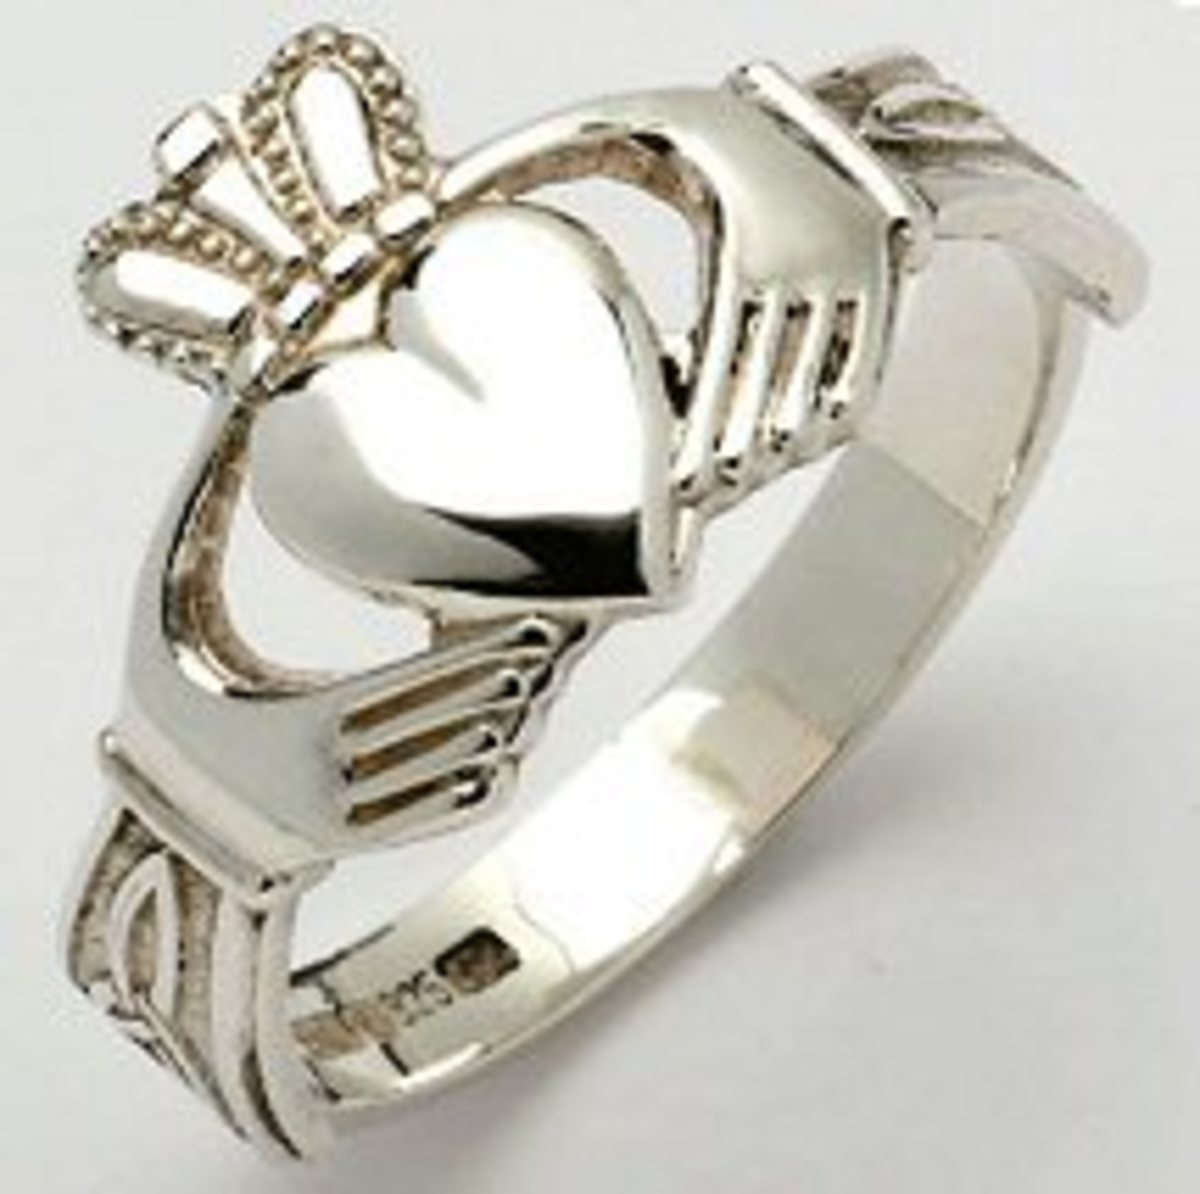 The History and Meaning of Irish Claddagh Rings